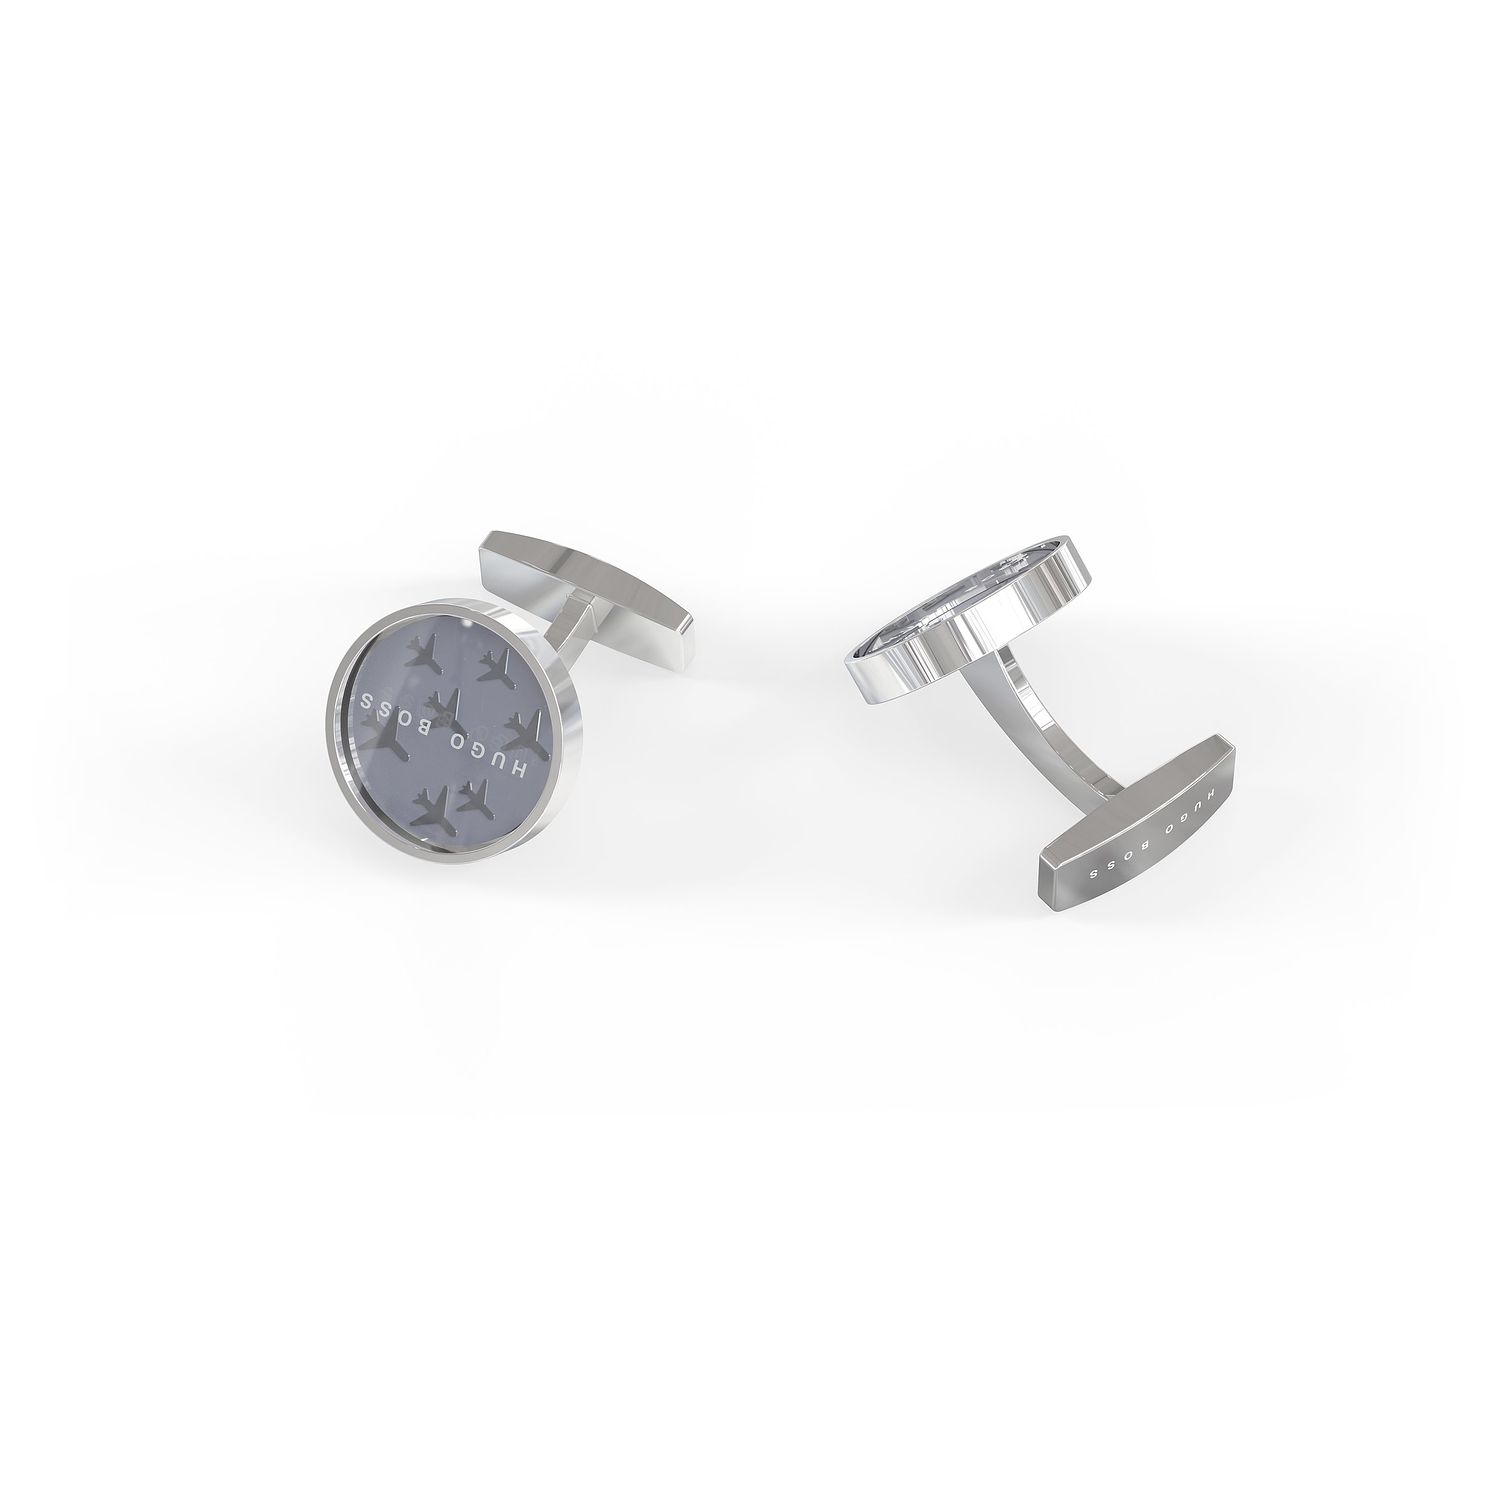 BOSS Traveller Men's Silver Tone Round Cufflinks - Product number 4814061